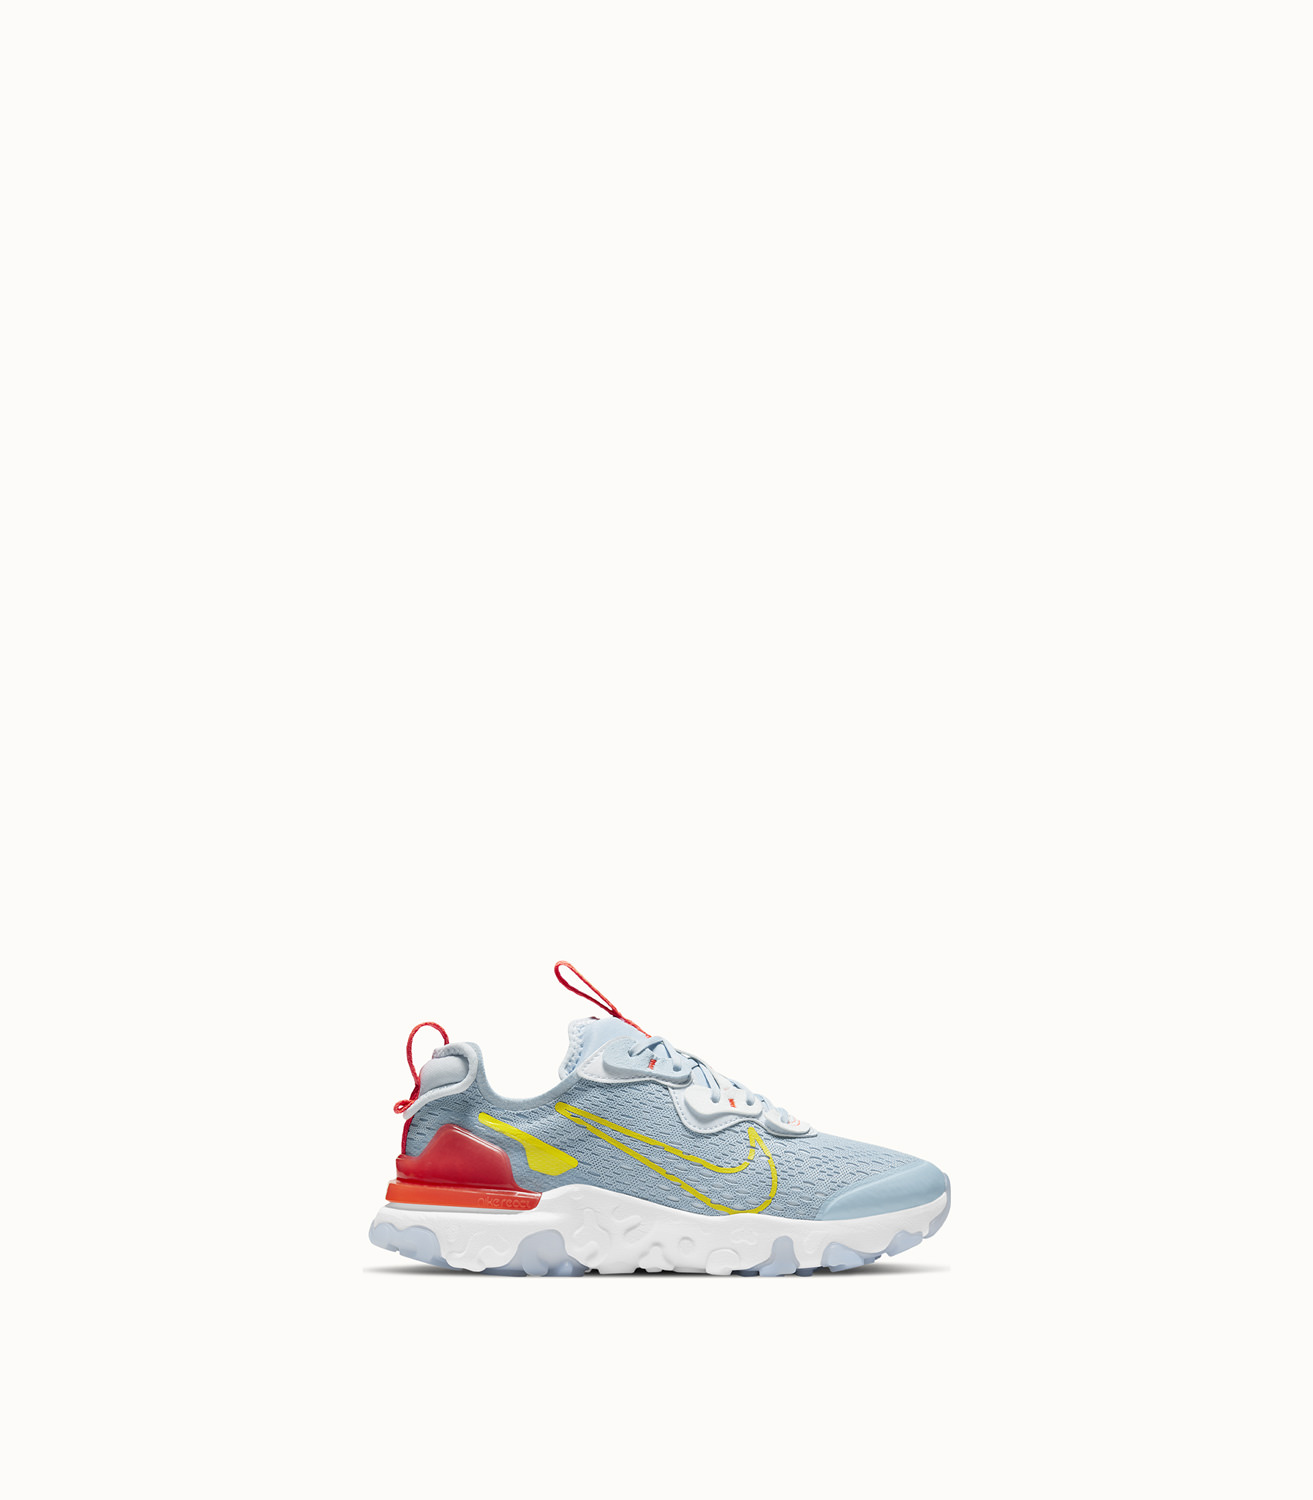 REACT VISION (GS) SNEAKERS COLOR LIGHT BLUE